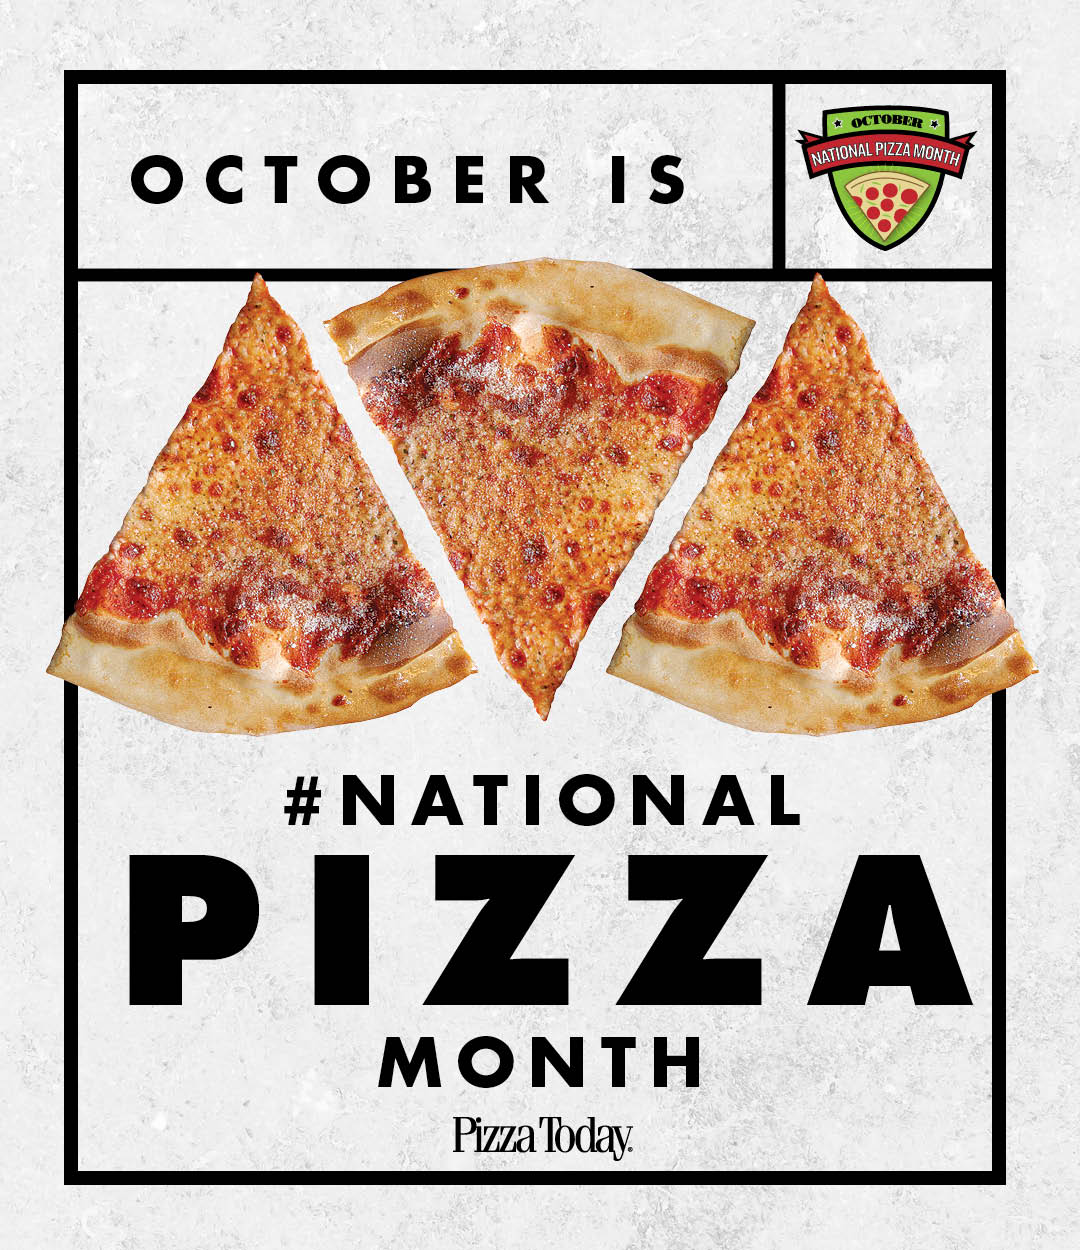 national pizza month october 2017